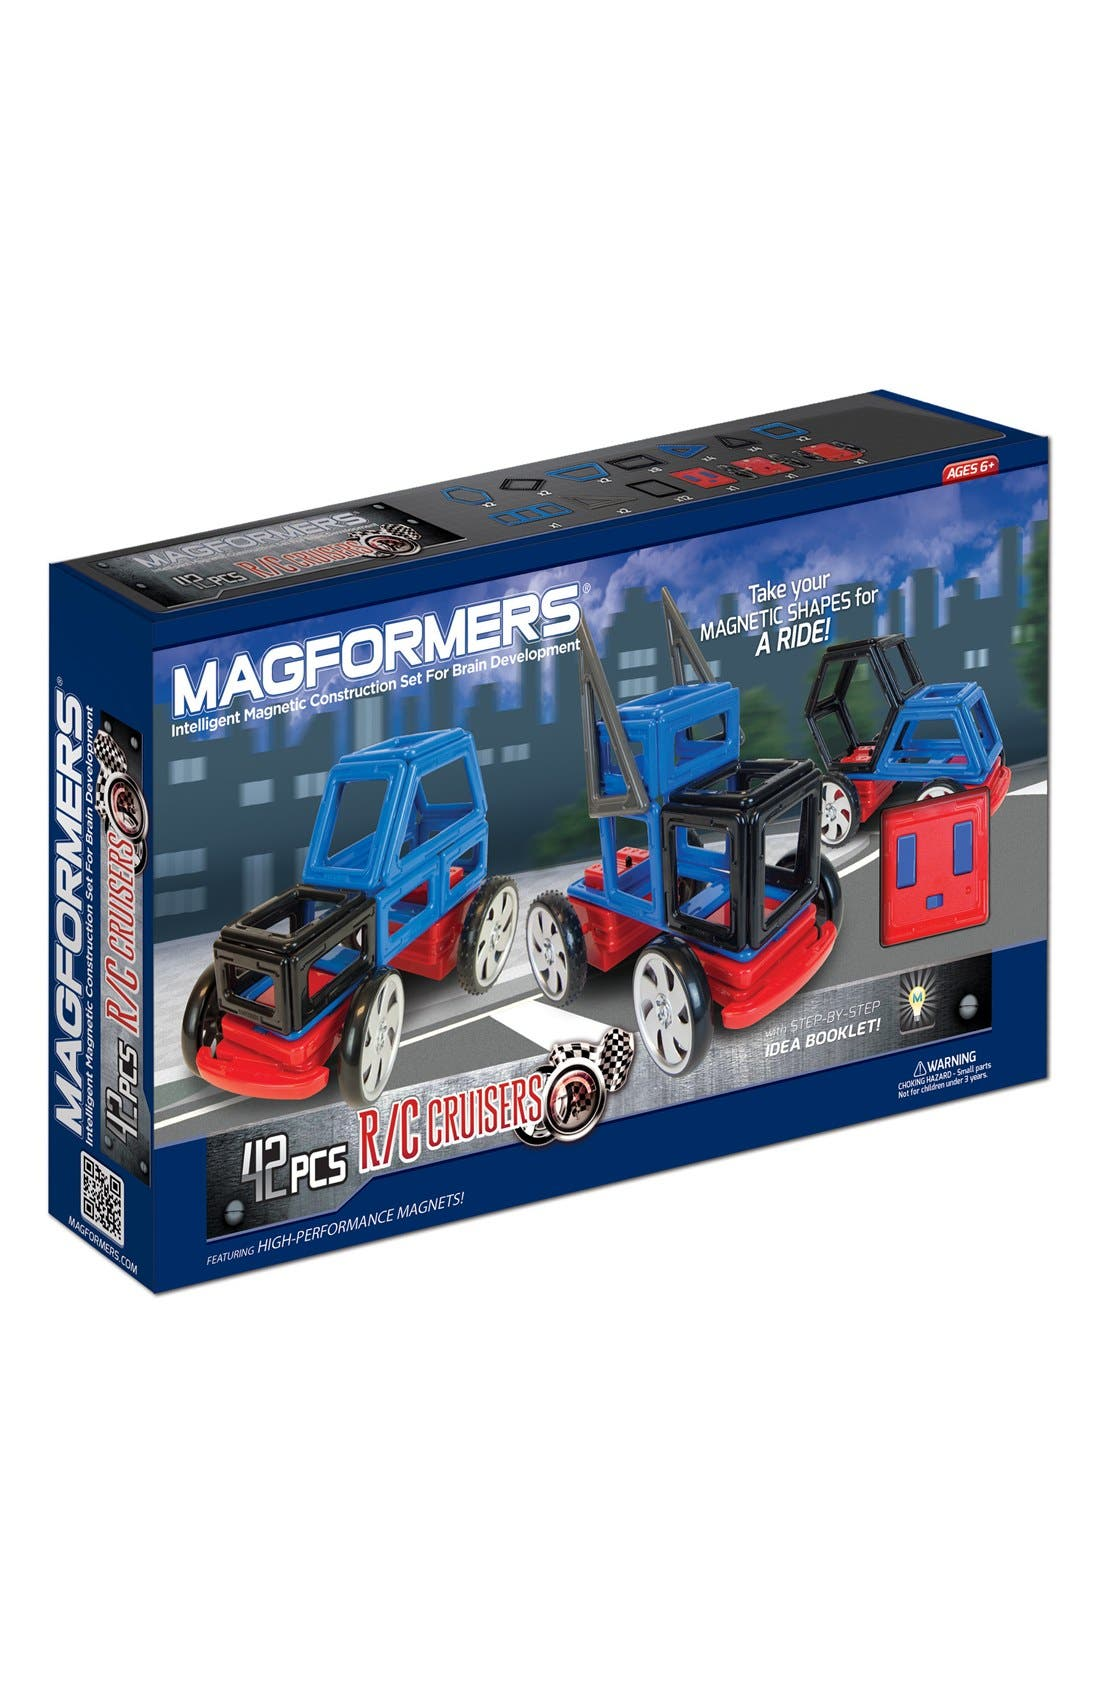 'R/C Cruiser' Magnetic Remote Control Vehicle Construction Kit,                         Main,                         color, 400